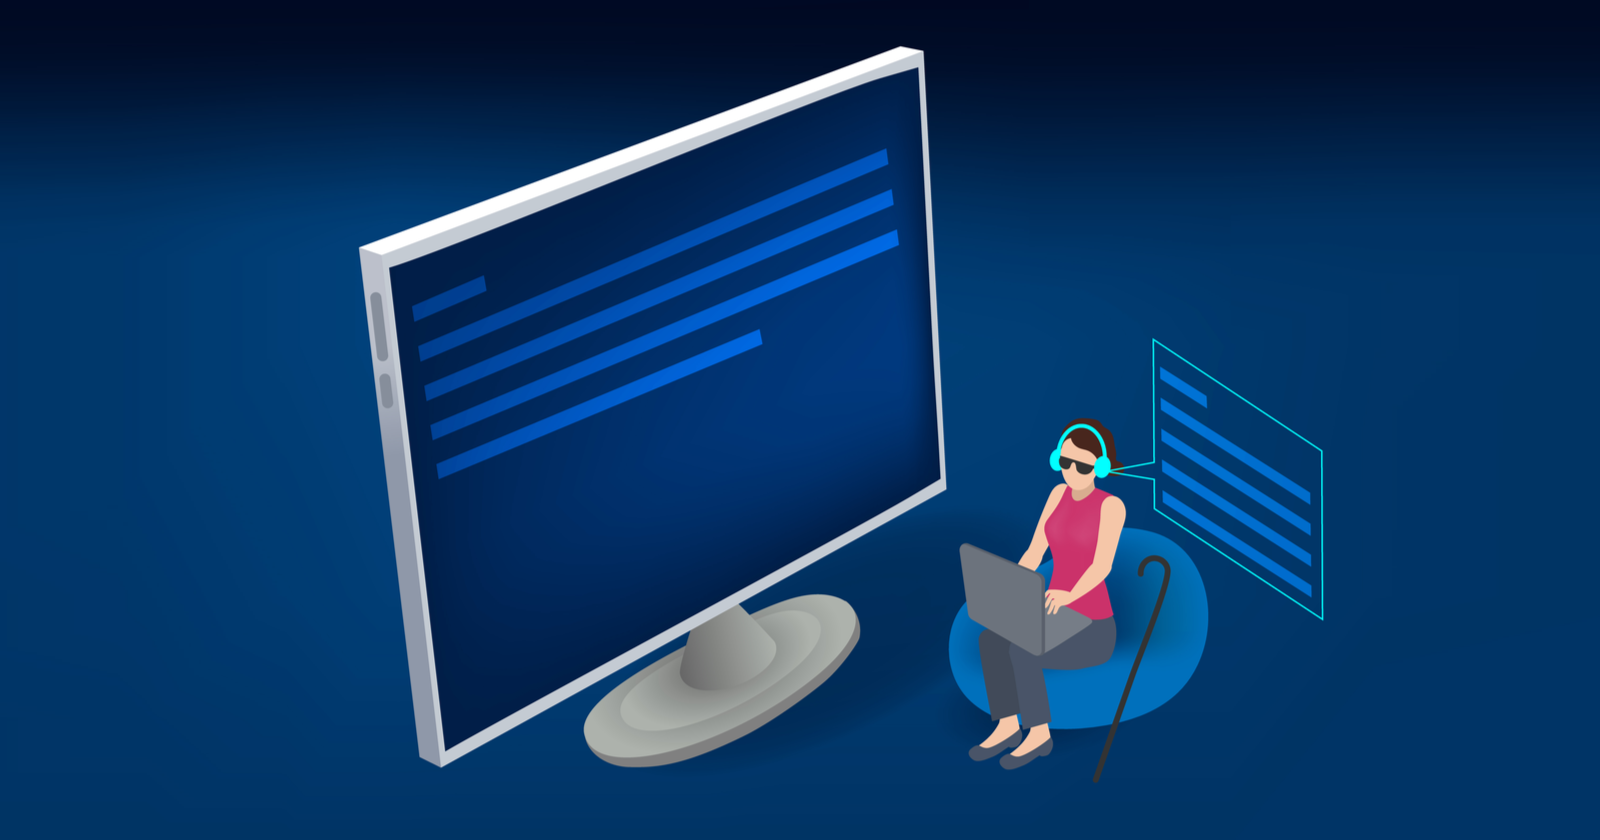 Accessibility for Digital Businesses: How Your Company Can Be a Leader via @kim_cre8pc thumbnail